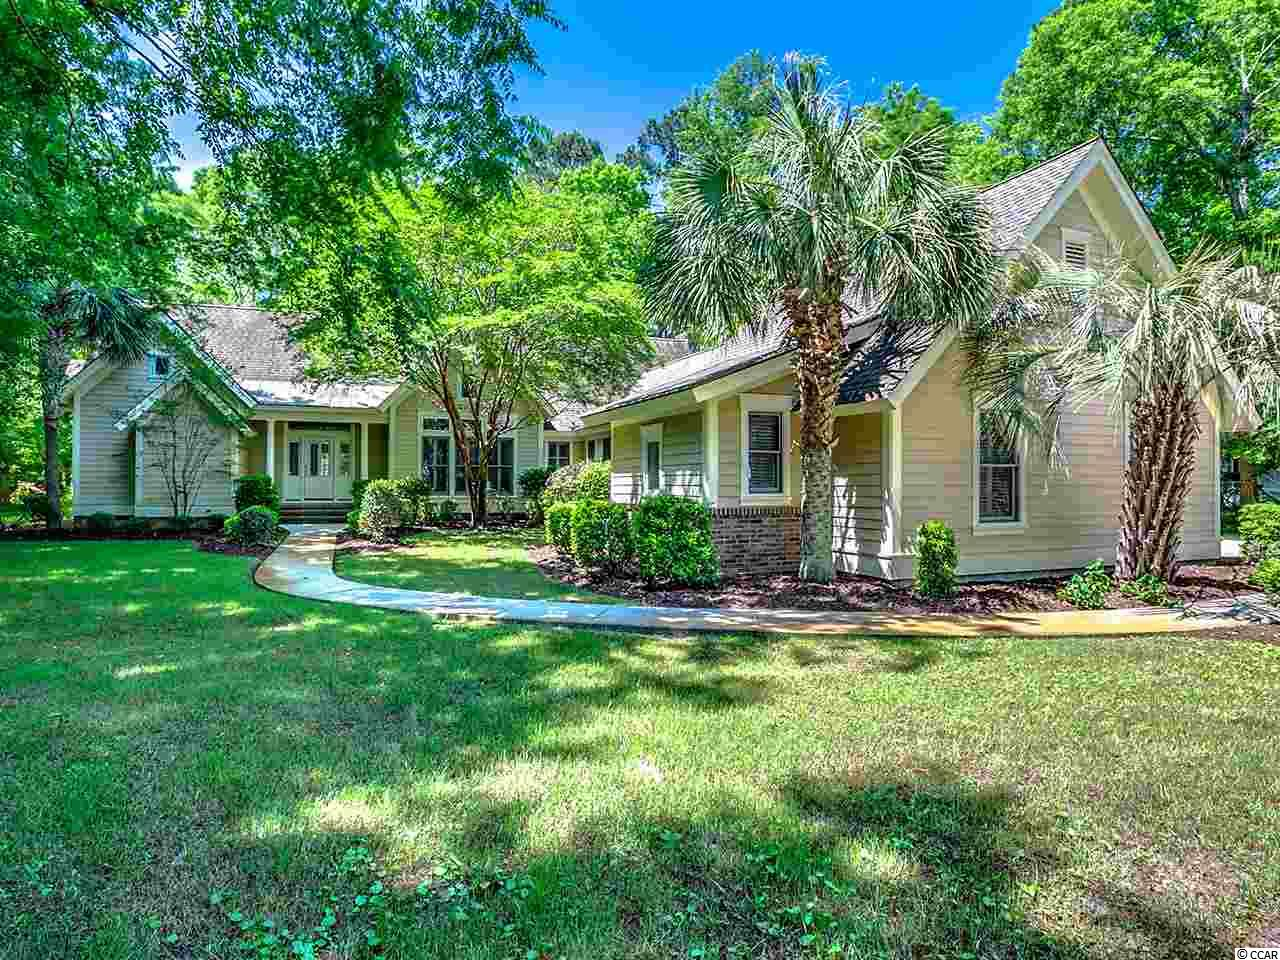 Single Family Home for Sale at 222 Old Carriage Loop 222 Old Carriage Loop Georgetown, South Carolina 29440 United States